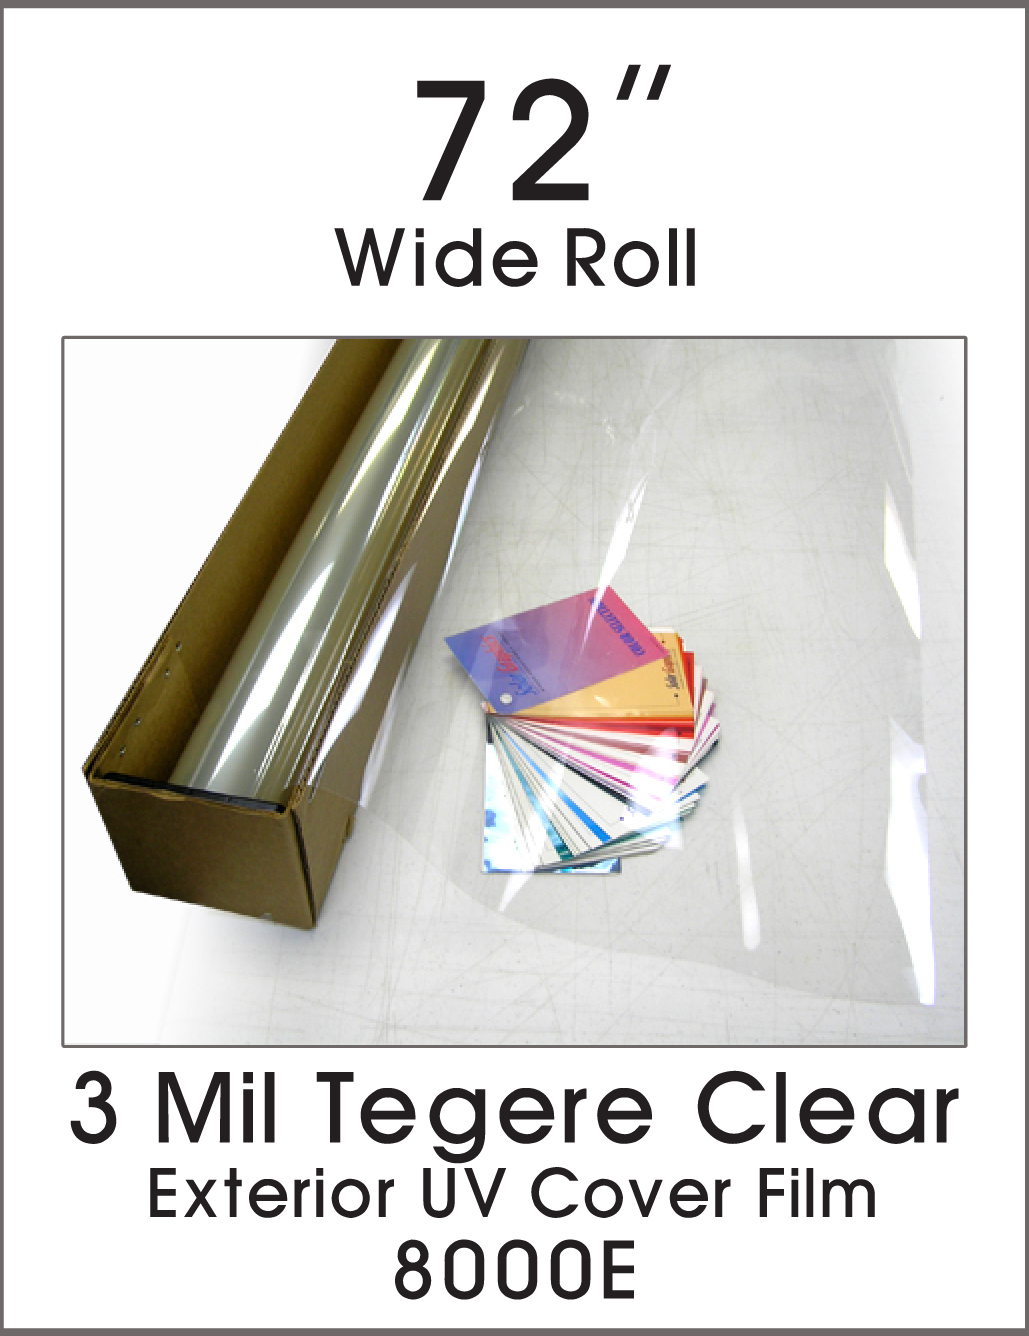 "3 Mil Tegere Clear - Exterior UV Cover Film - 72"" - 8000E - Colored Window Film"